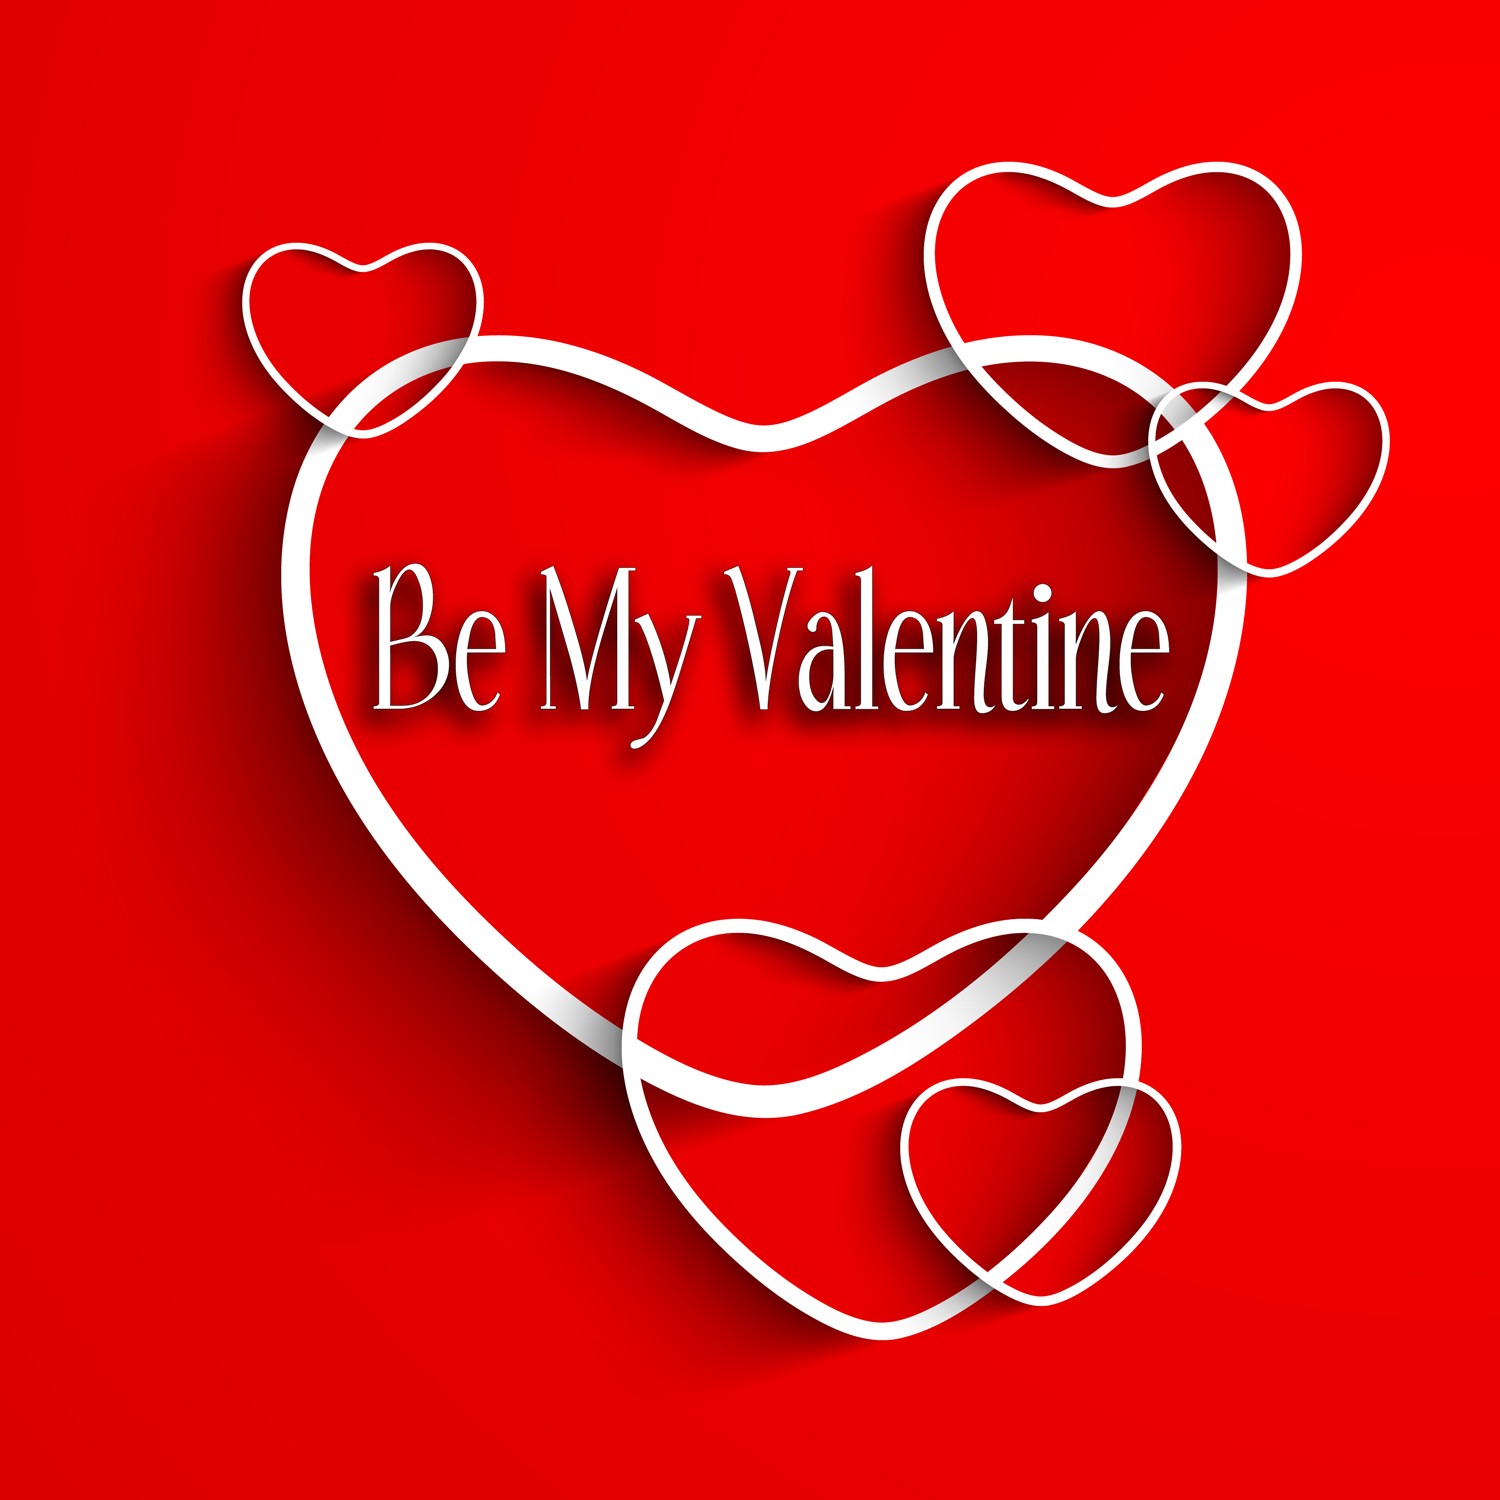 Valentine's Day Jewelry Gifts | East Towne Jewelers | Mequon, WI